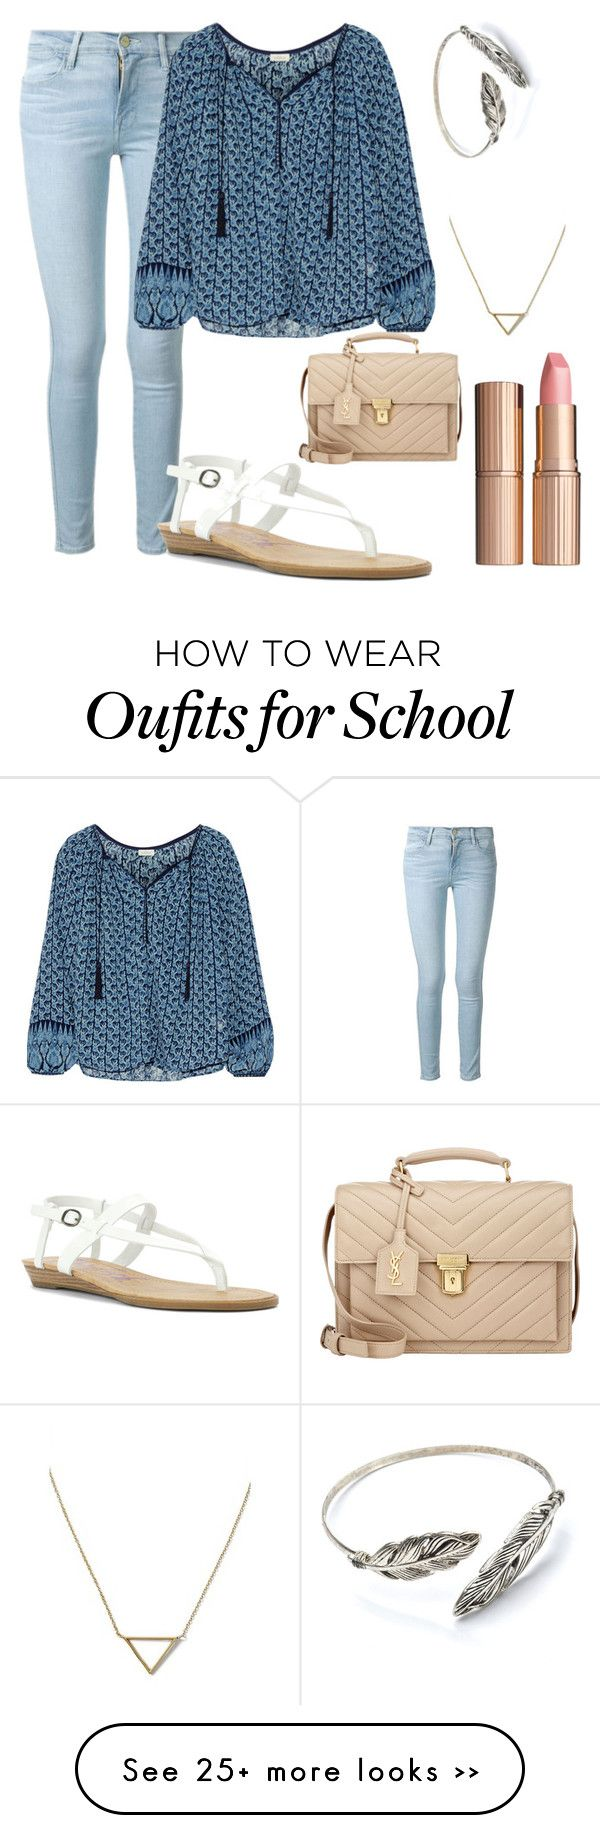 """First day of school!!!!"" by emilystoneman on Polyvore featuring Frame Denim, Talitha, Blowfish, Yves Saint Laurent, Banana Republic and Charlotte Tilbury"